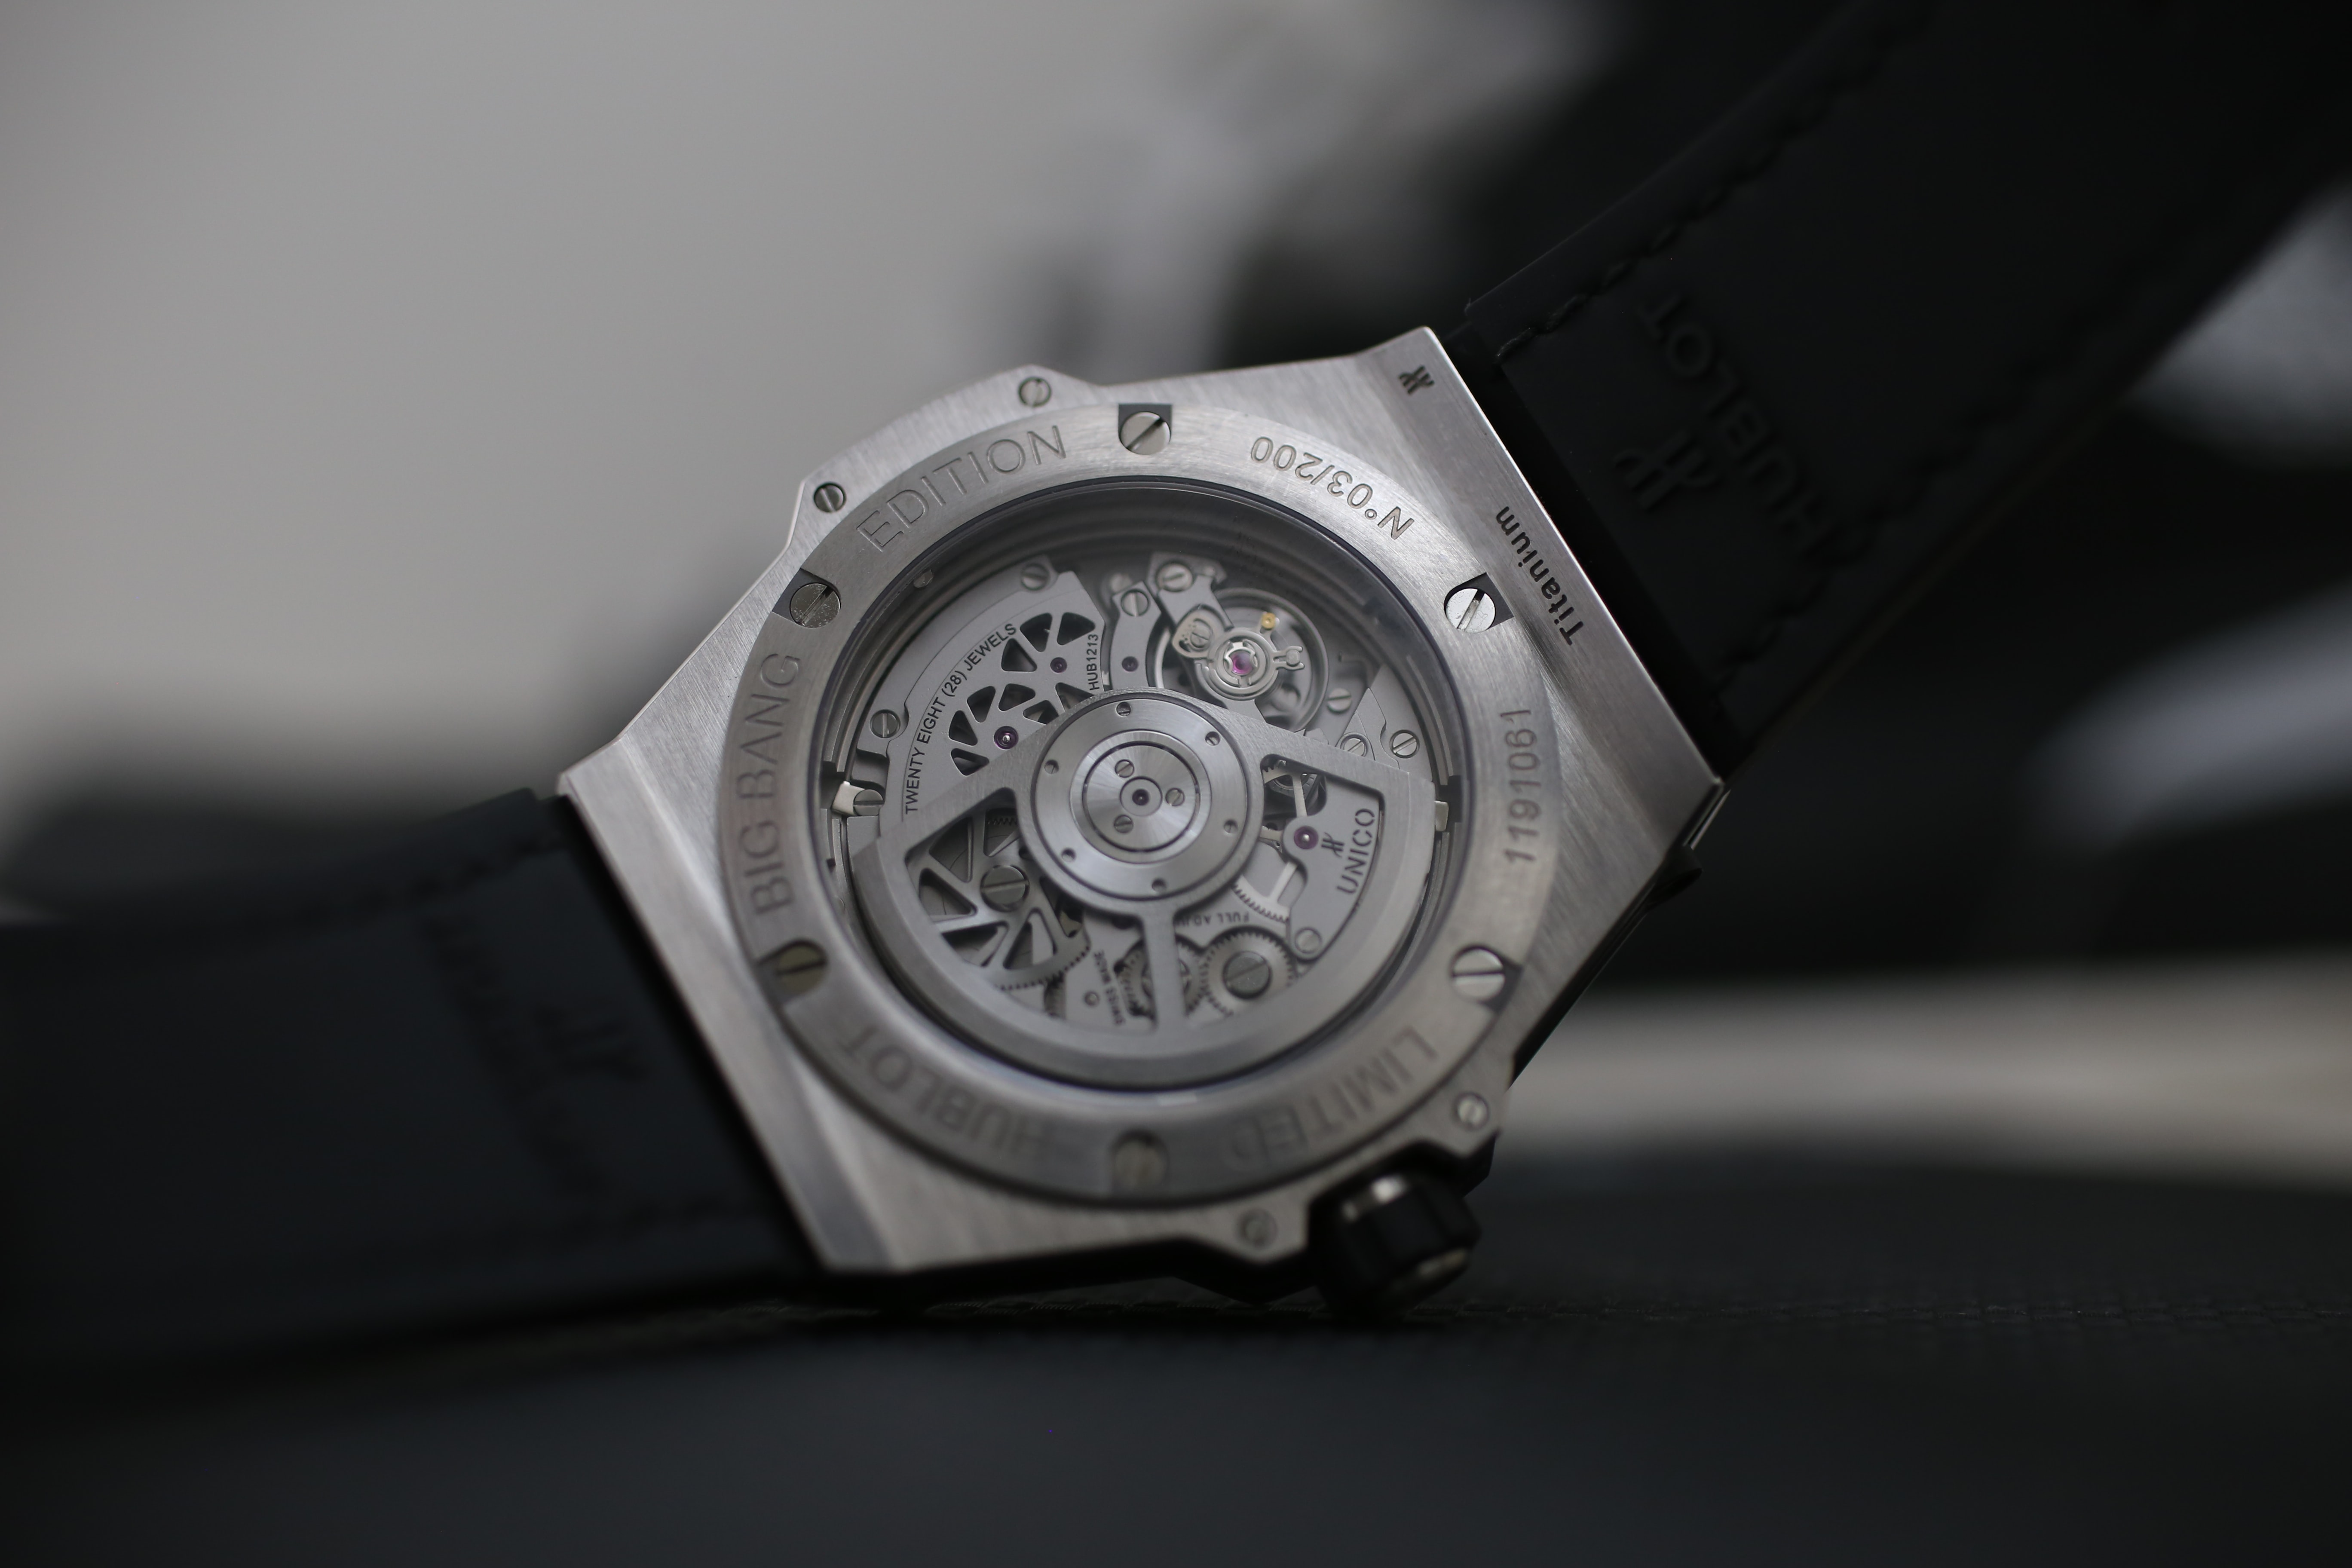 UNICO HUB1213 Hublot Sang Bleu In-Depth: The Hublot Big Bang Sang Bleu – A Tattoo-Inspired Limited Edition That I Actually Like (A Lot) In-Depth: The Hublot Big Bang Sang Bleu – A Tattoo-Inspired Limited Edition That I Actually Like (A Lot) IMG 1064